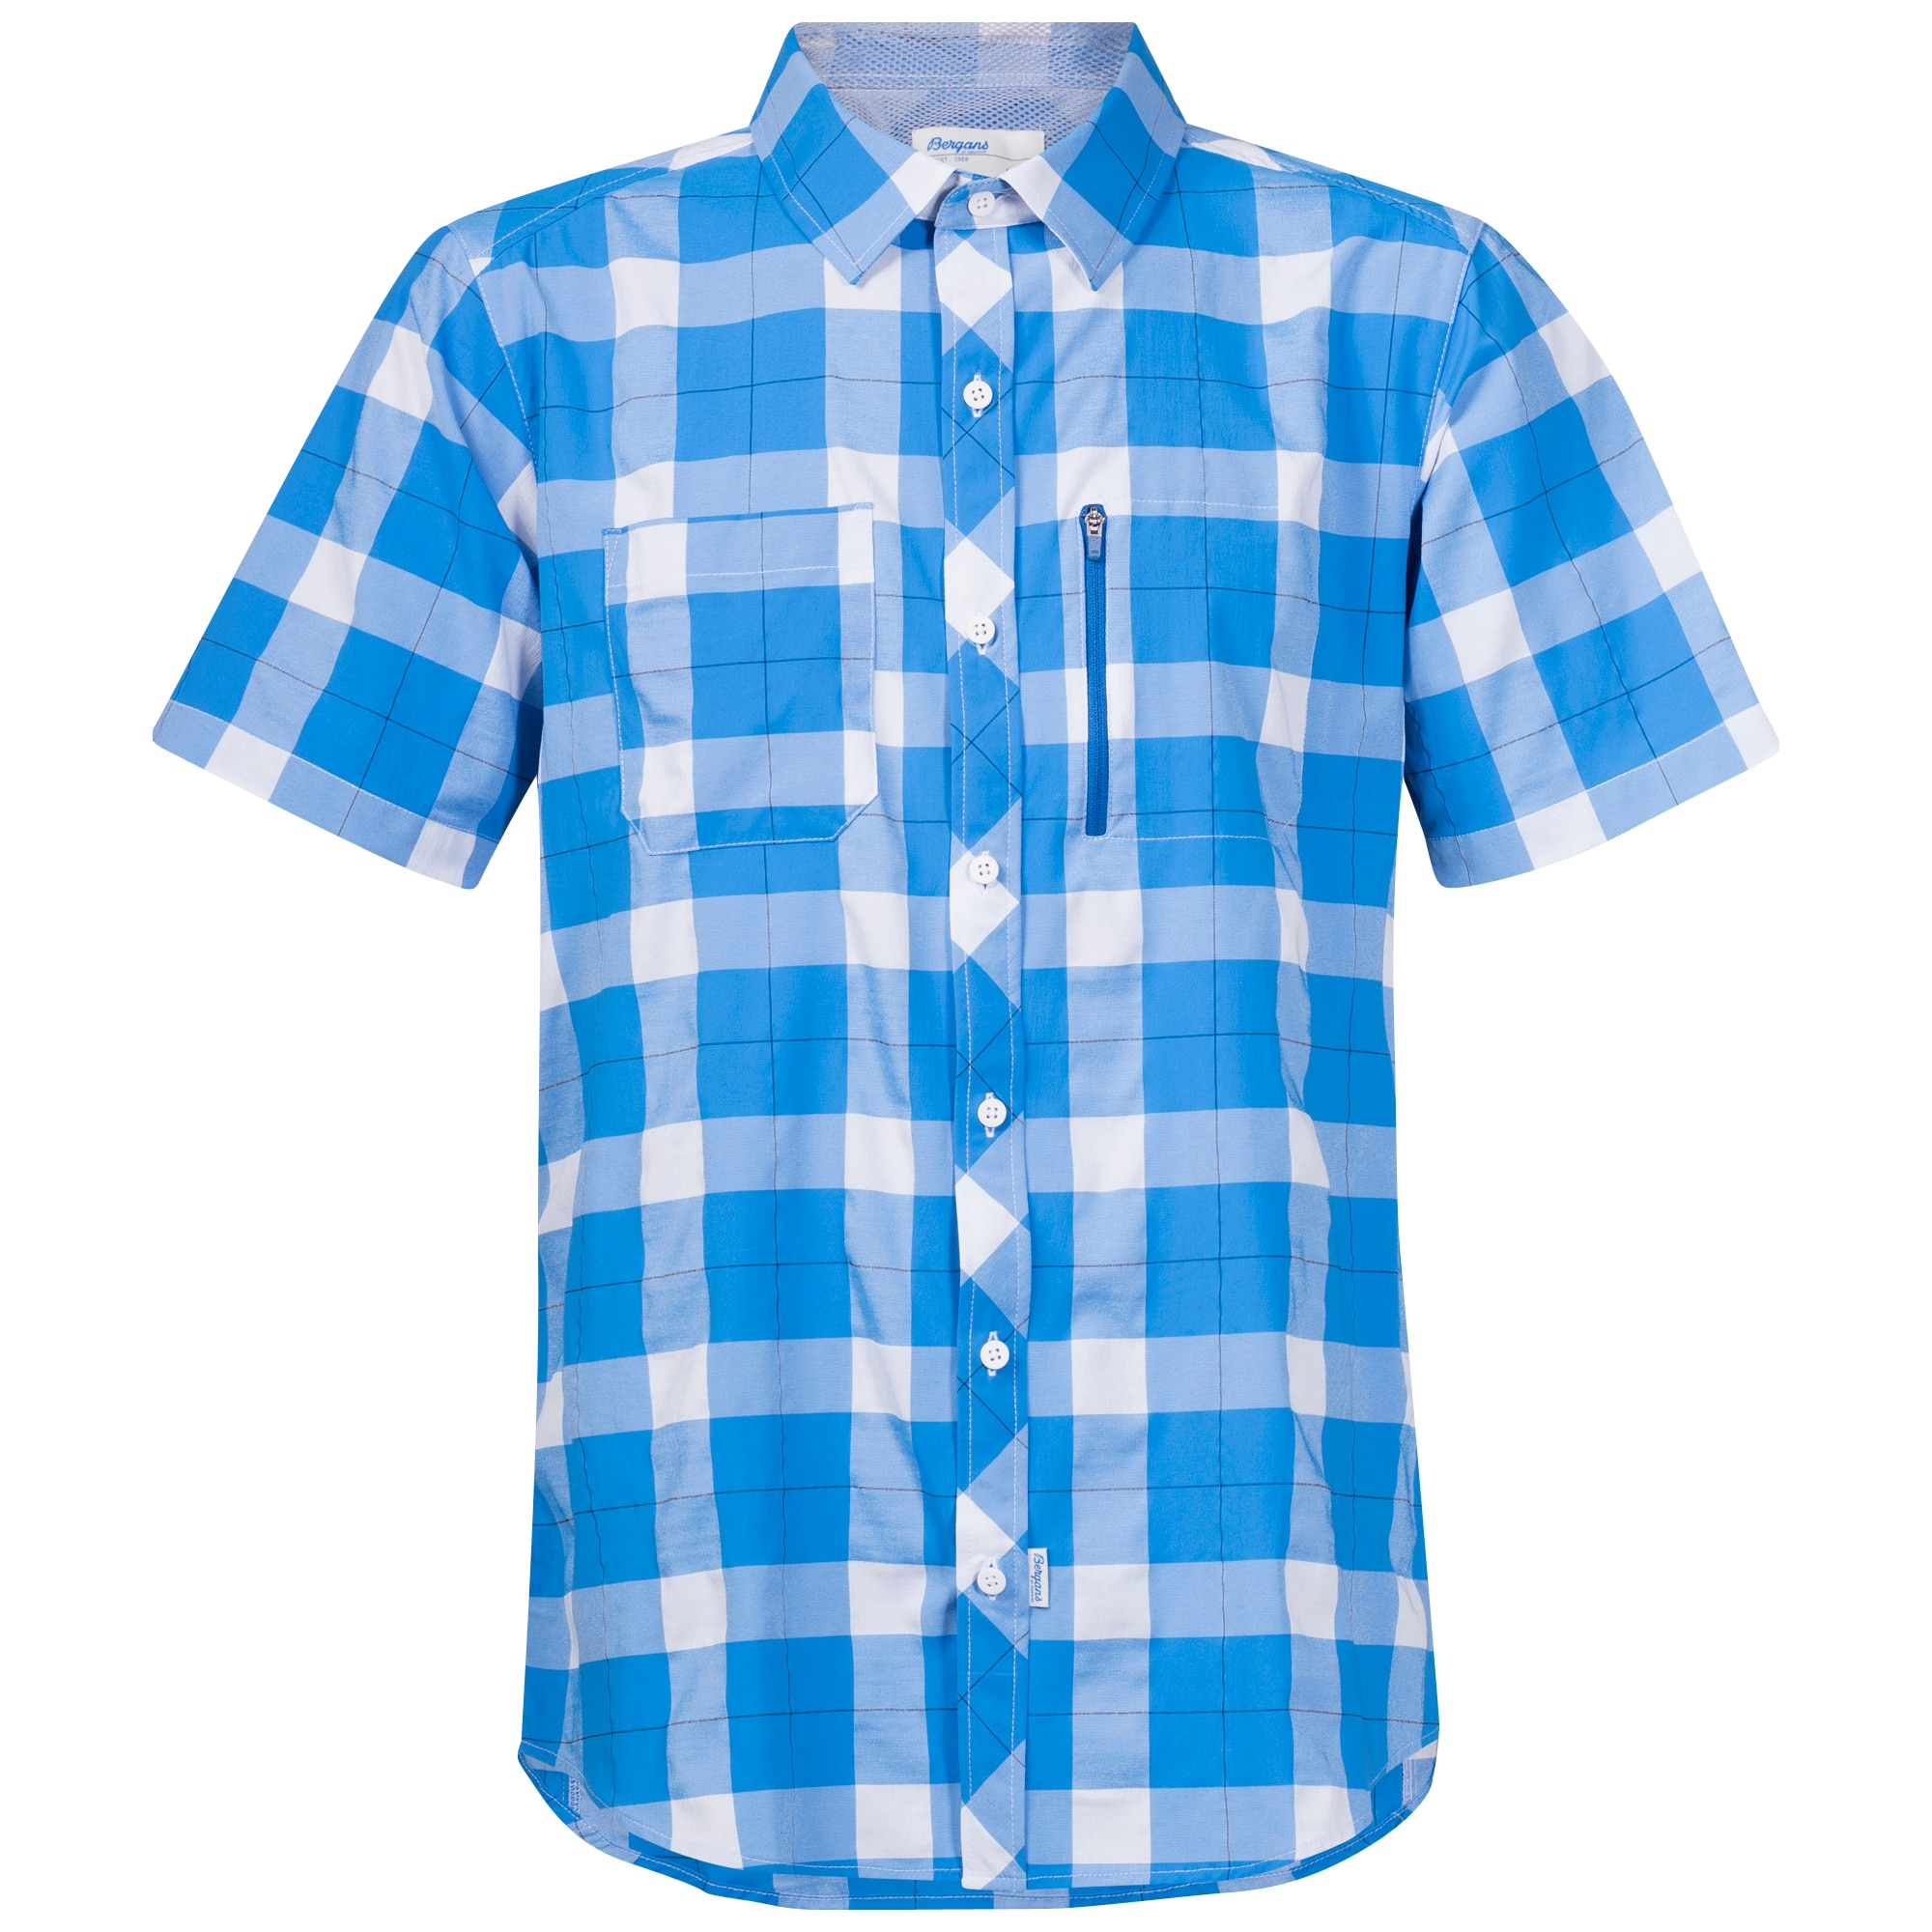 Jondal Shirt Short Sleeve